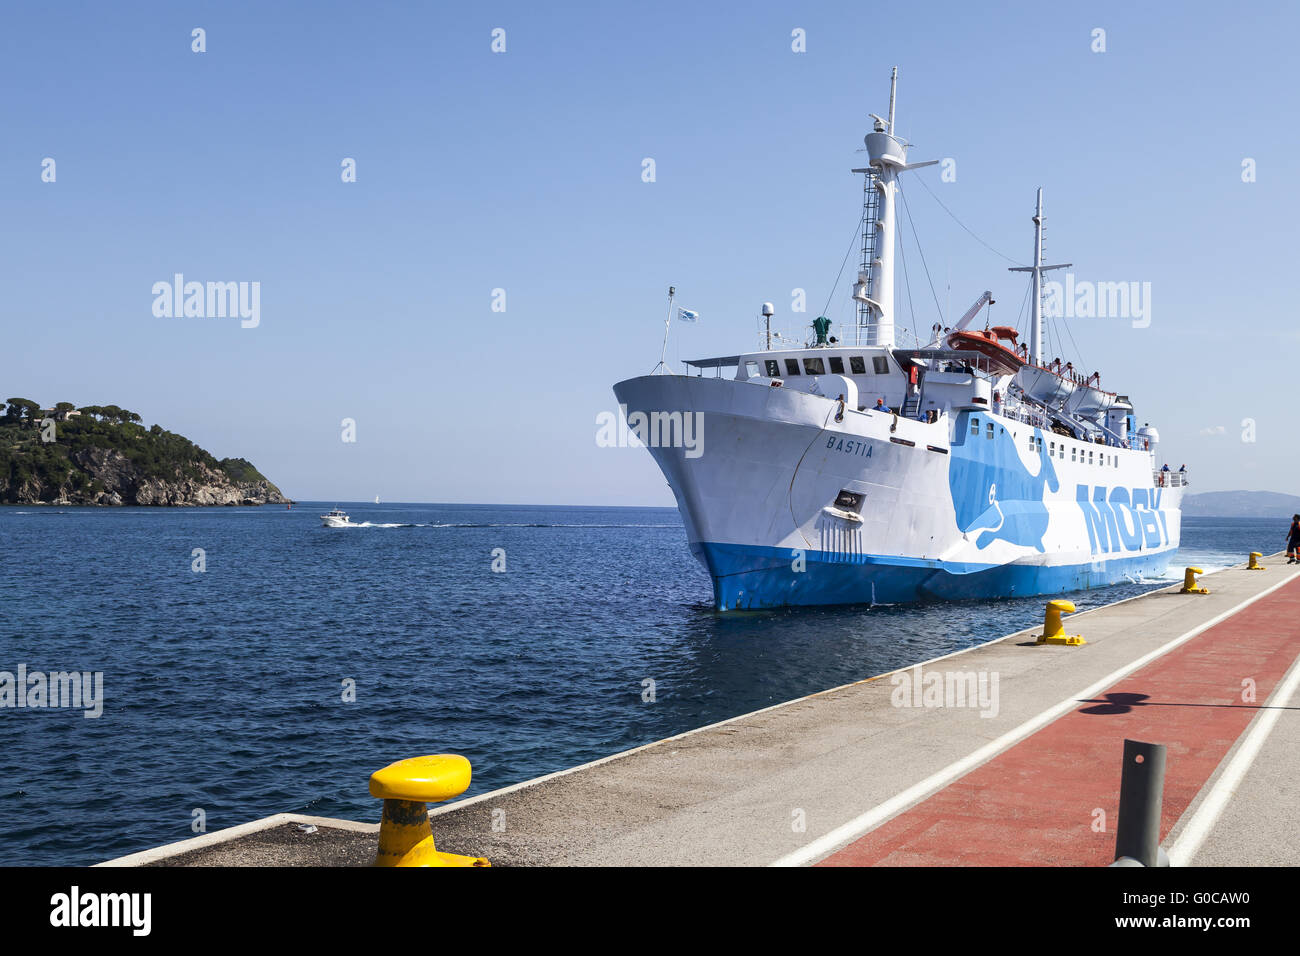 Moby lines car ferry in Port of Cavo, Elba island - Stock Image